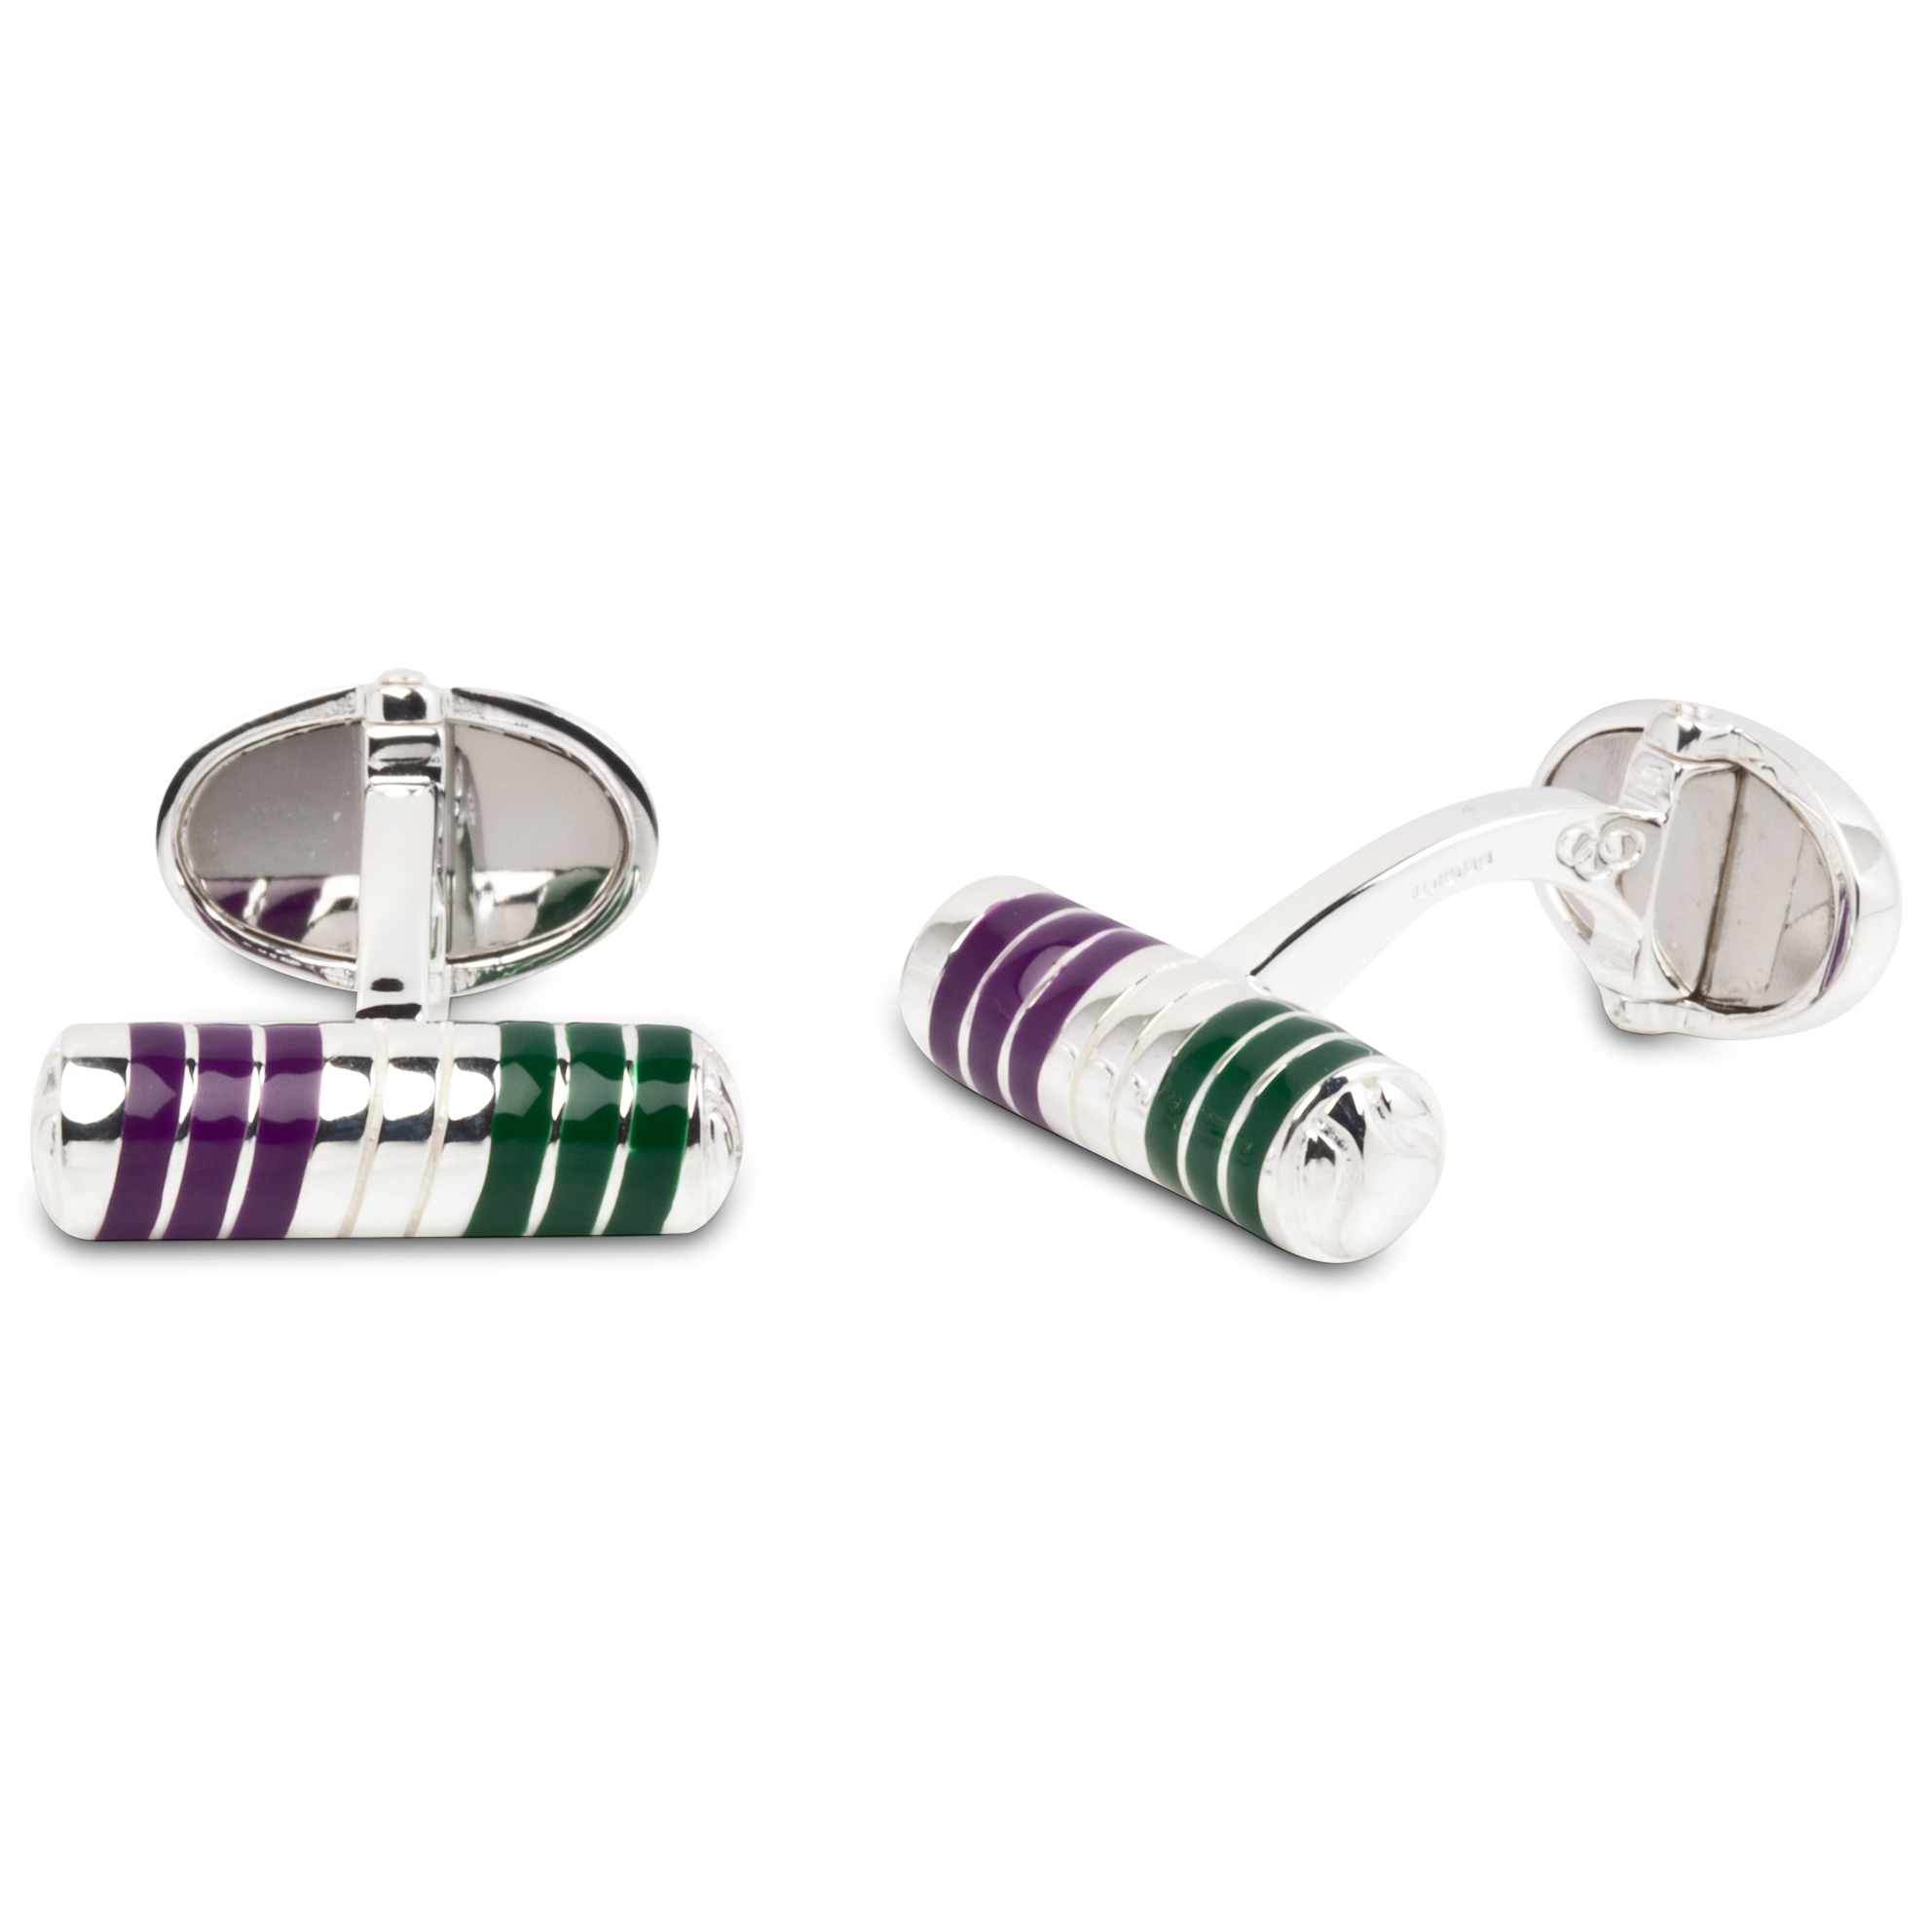 Wimbledon Limited Edition 2014 Cufflinks